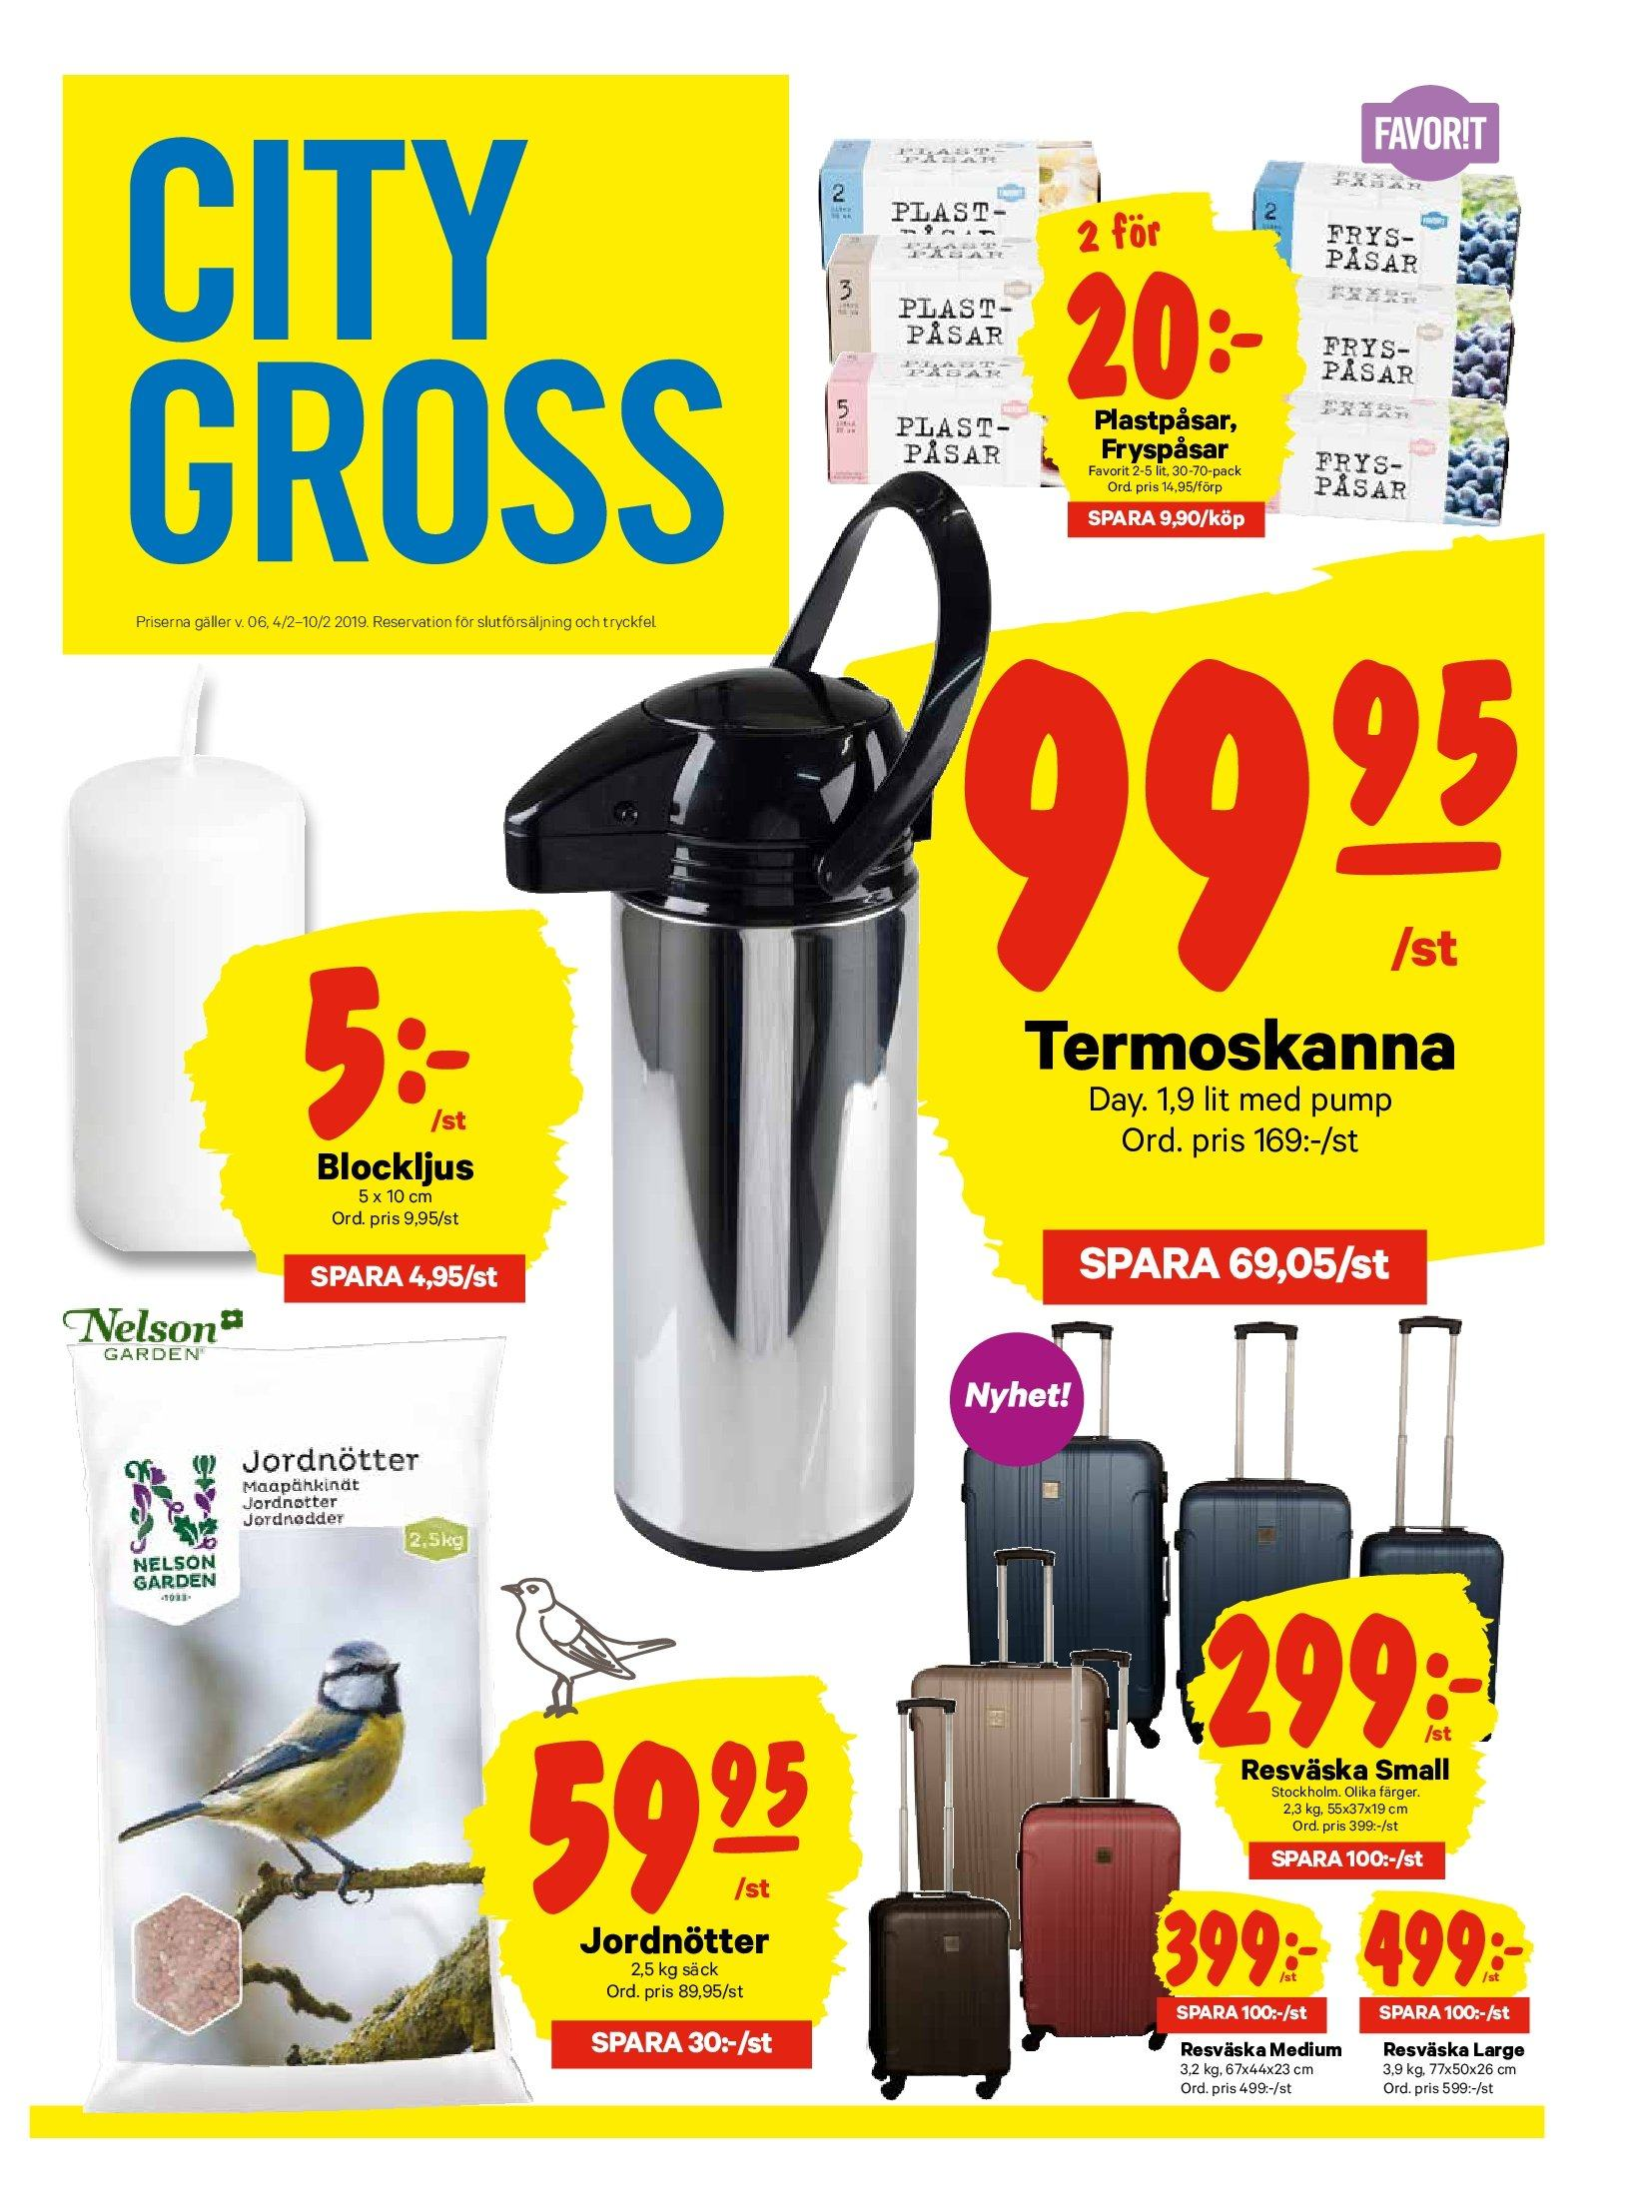 City Gross reklamblad - 4/2 2019 - 10/2 2019. Sida 12.